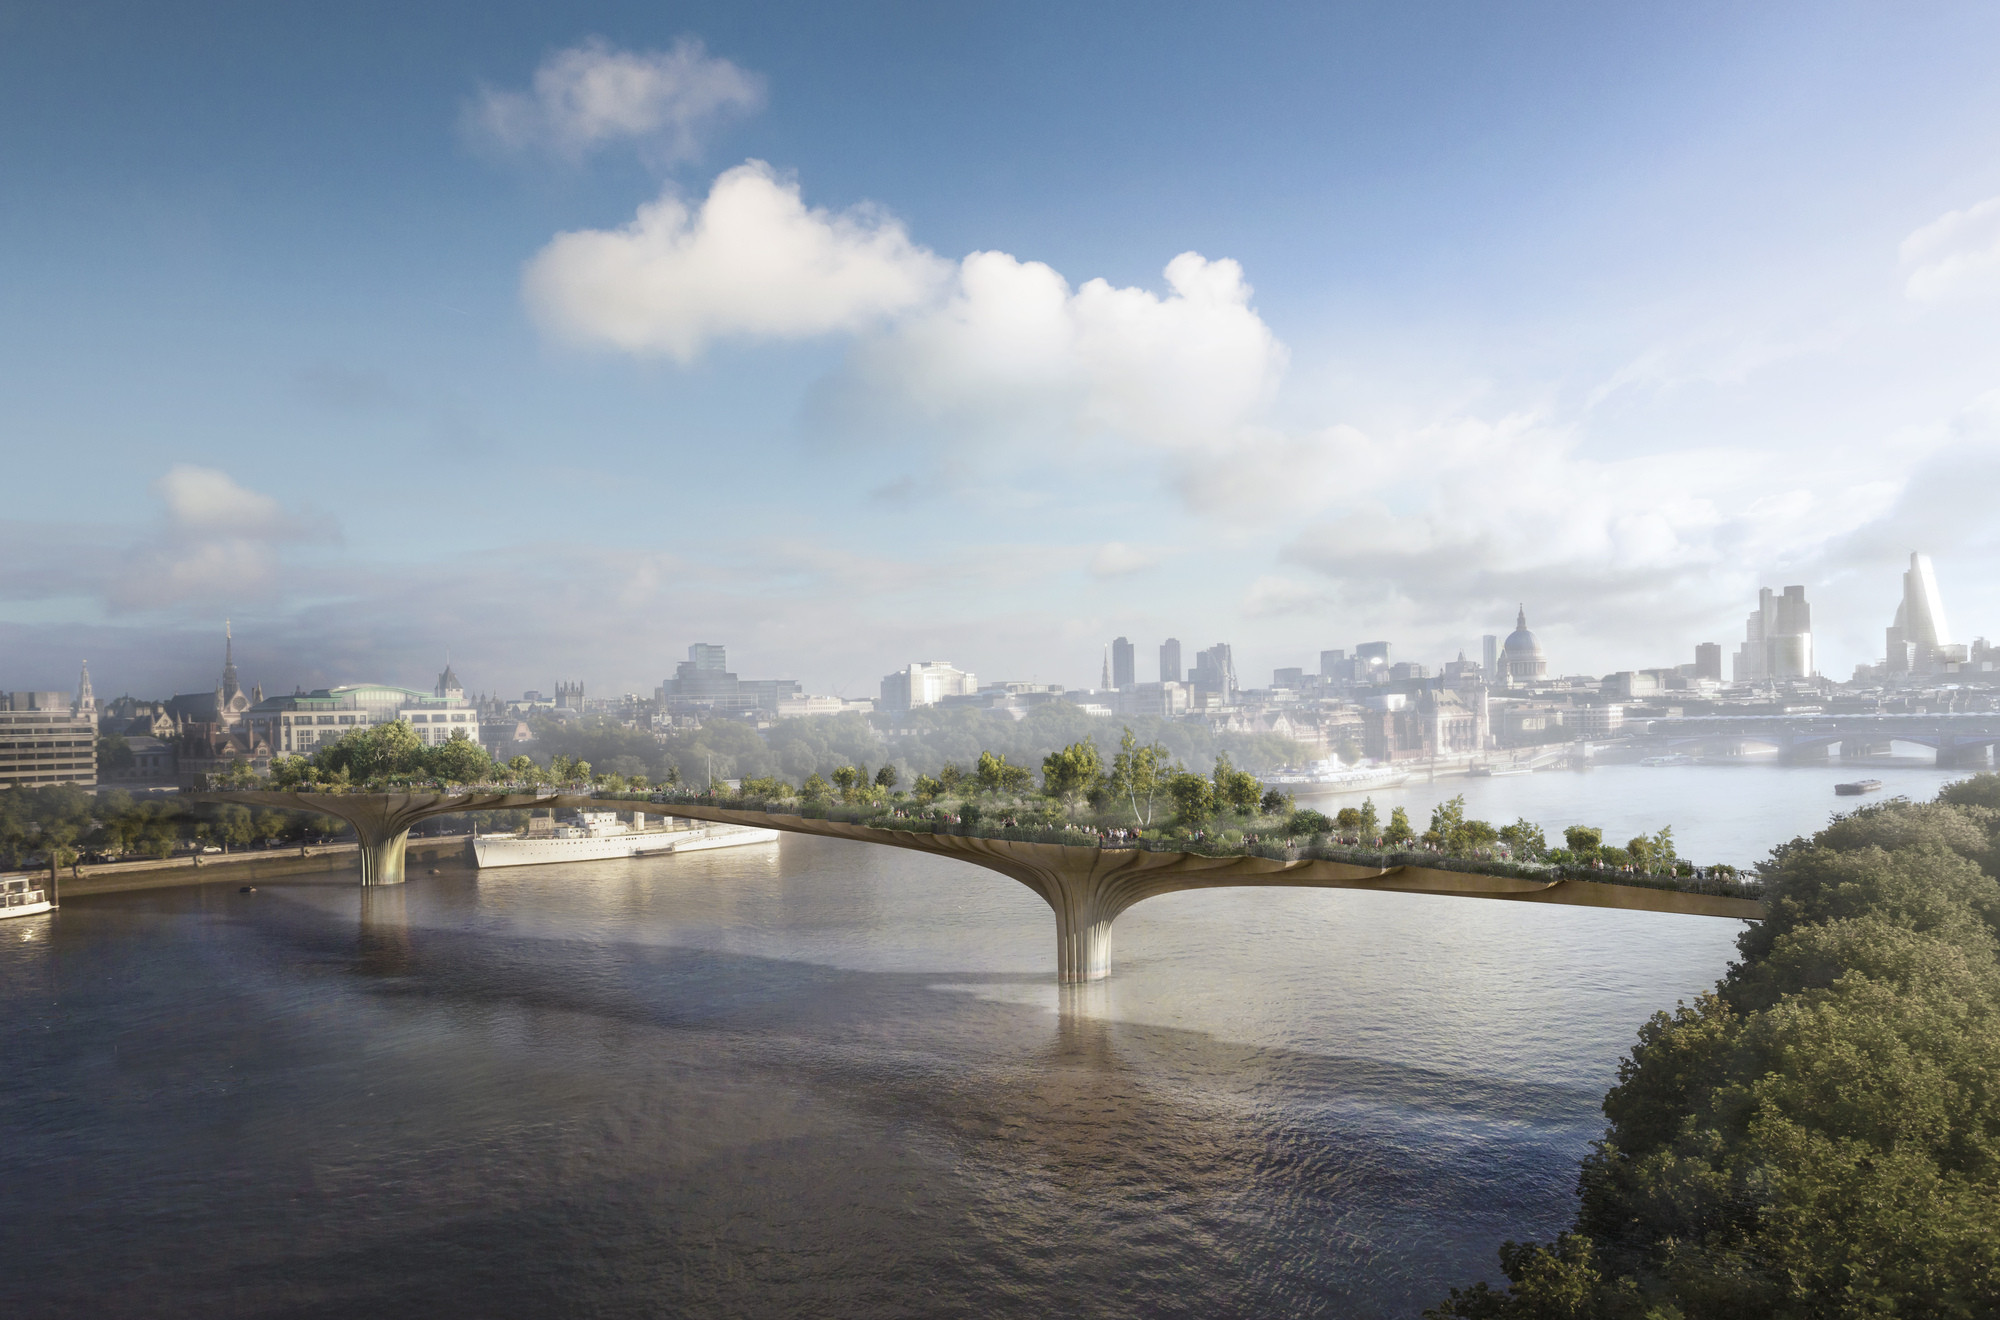 Thomas Heatherwick Selected for Latest Maggie's Centre, Heatherwick's trademark ingenuity, demonstrated in previous projects such as the London Garden Bridge proposal, will be needed for the difficult site in Leeds. Image Courtesy of Arup